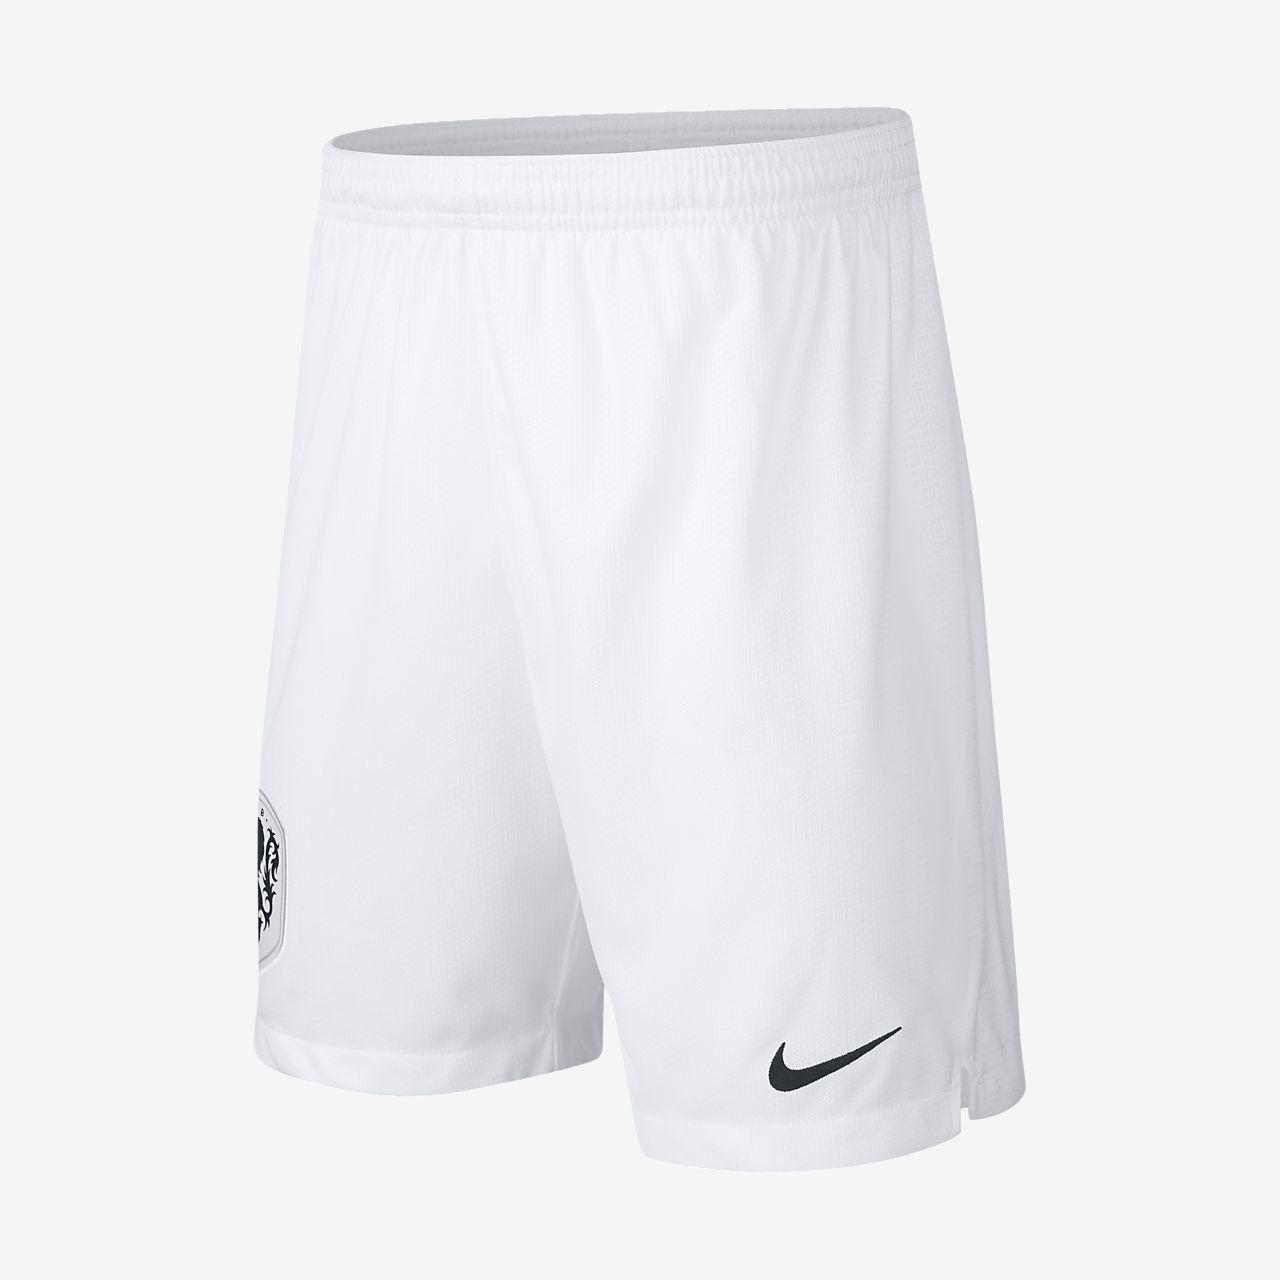 2018 Netherlands Stadium Home Older Kids' Football Shorts